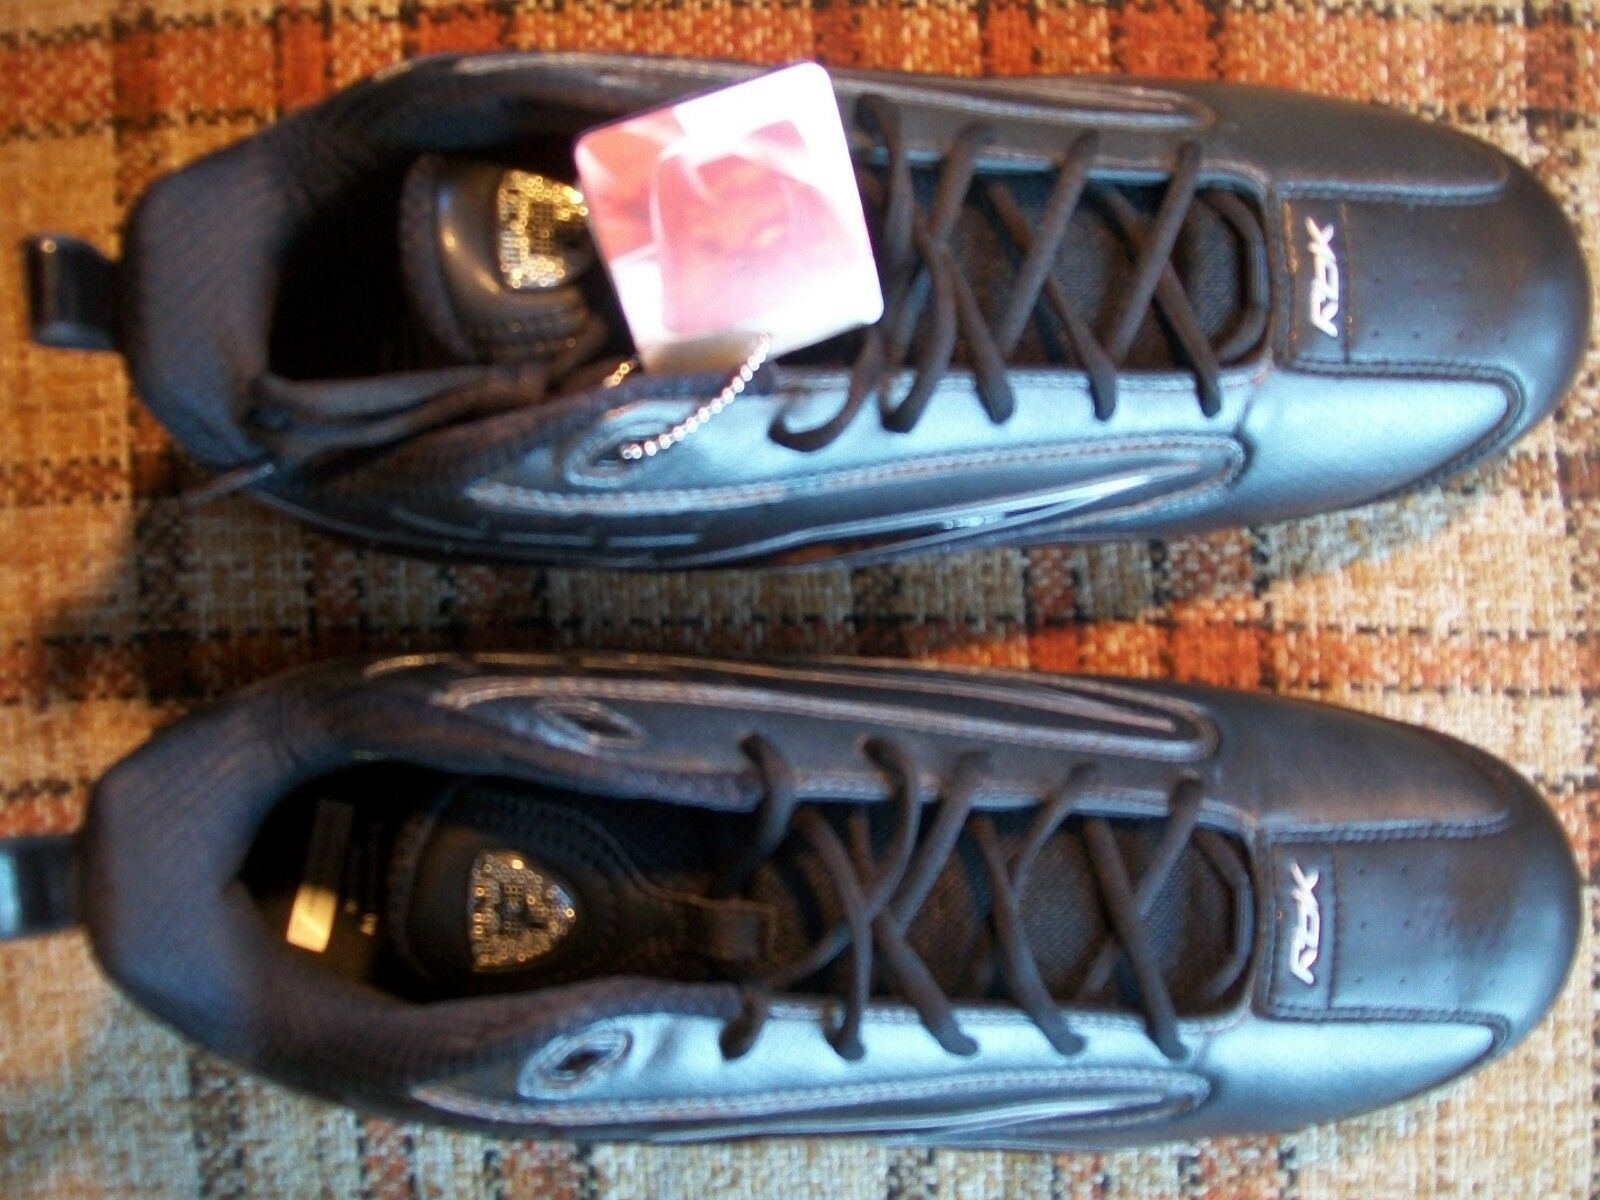 NWT - Reebok Mens Size 17 (Euro 53.5) NFL Players Equip FGT Football Cleats